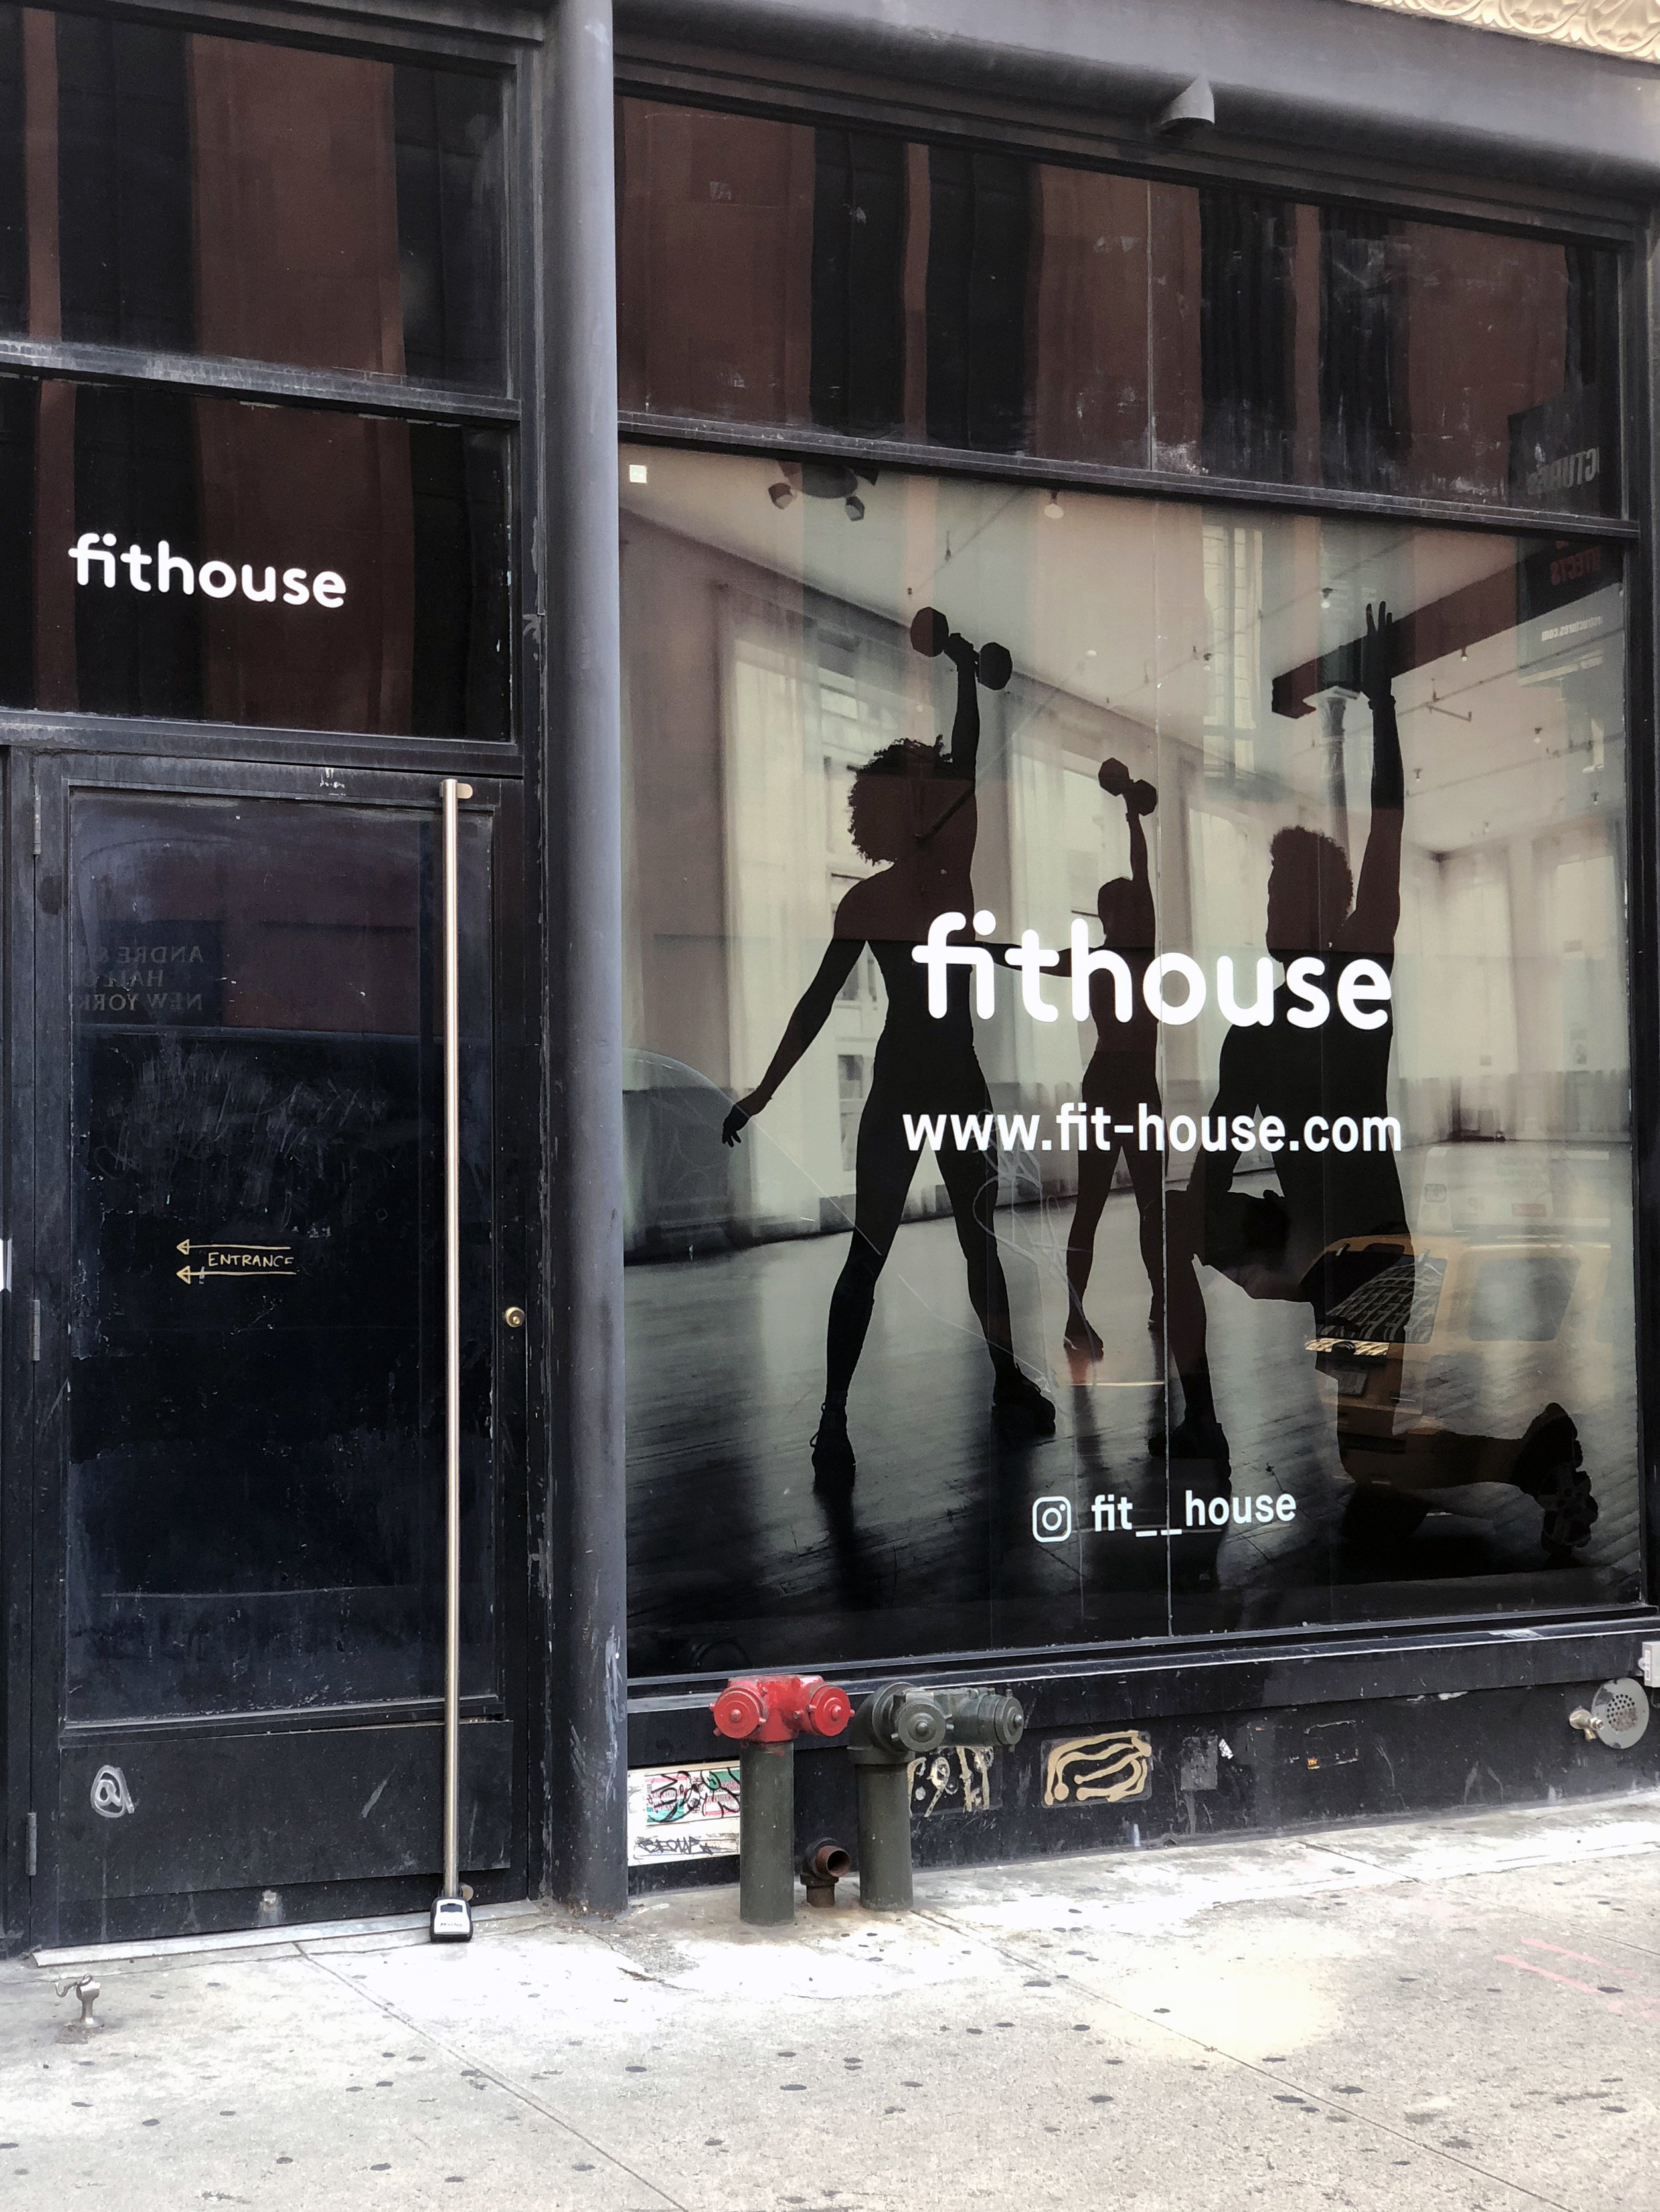 Unique Print NY - Large Format Printing - Fithouse Window Signs.jpg